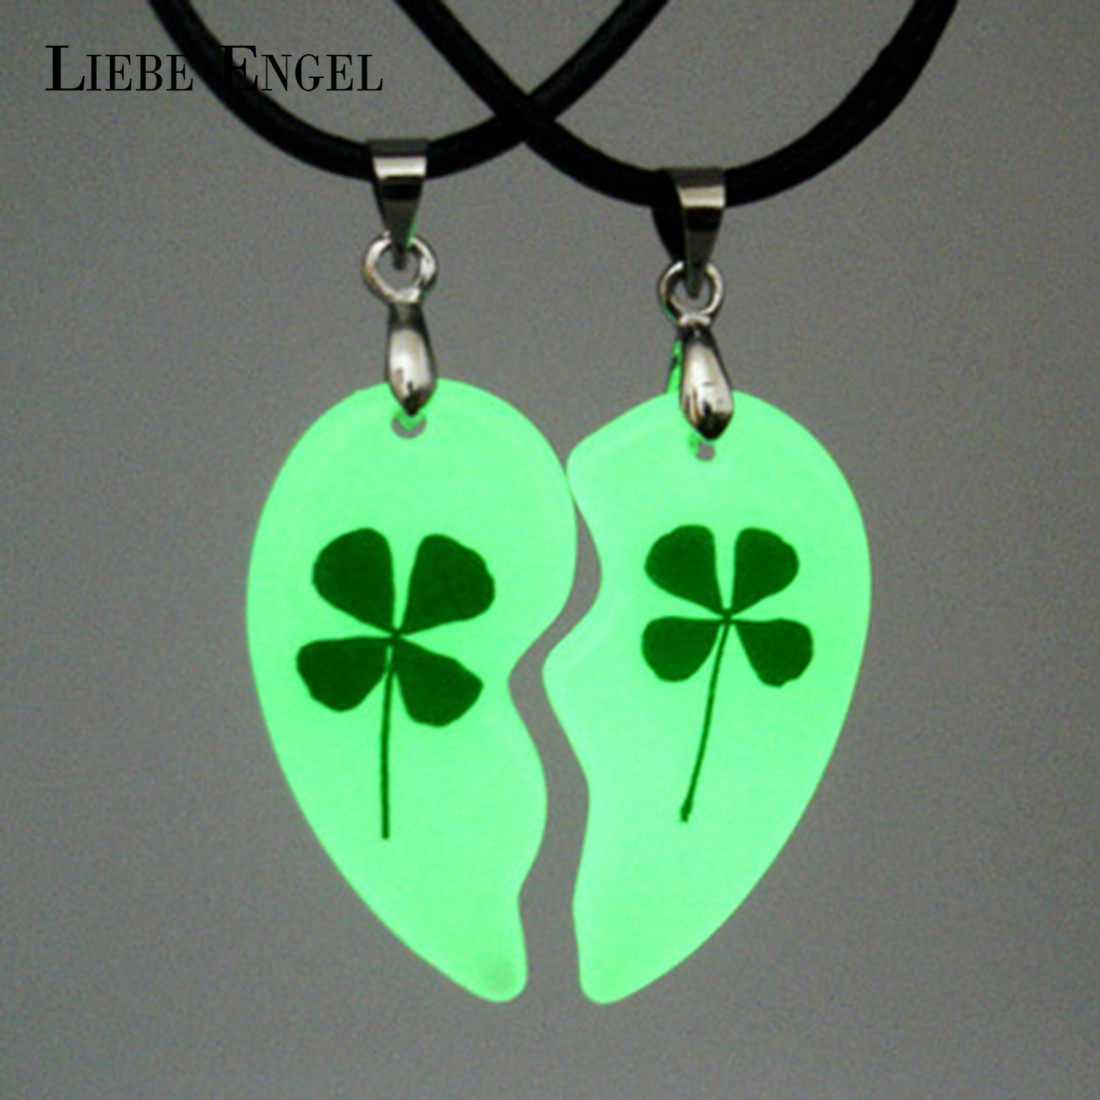 2pcs Lovers Necklace Jewelry Clover Luminous Couple Necklace Heart Shape Necklace Gifts Glowing In The Dark